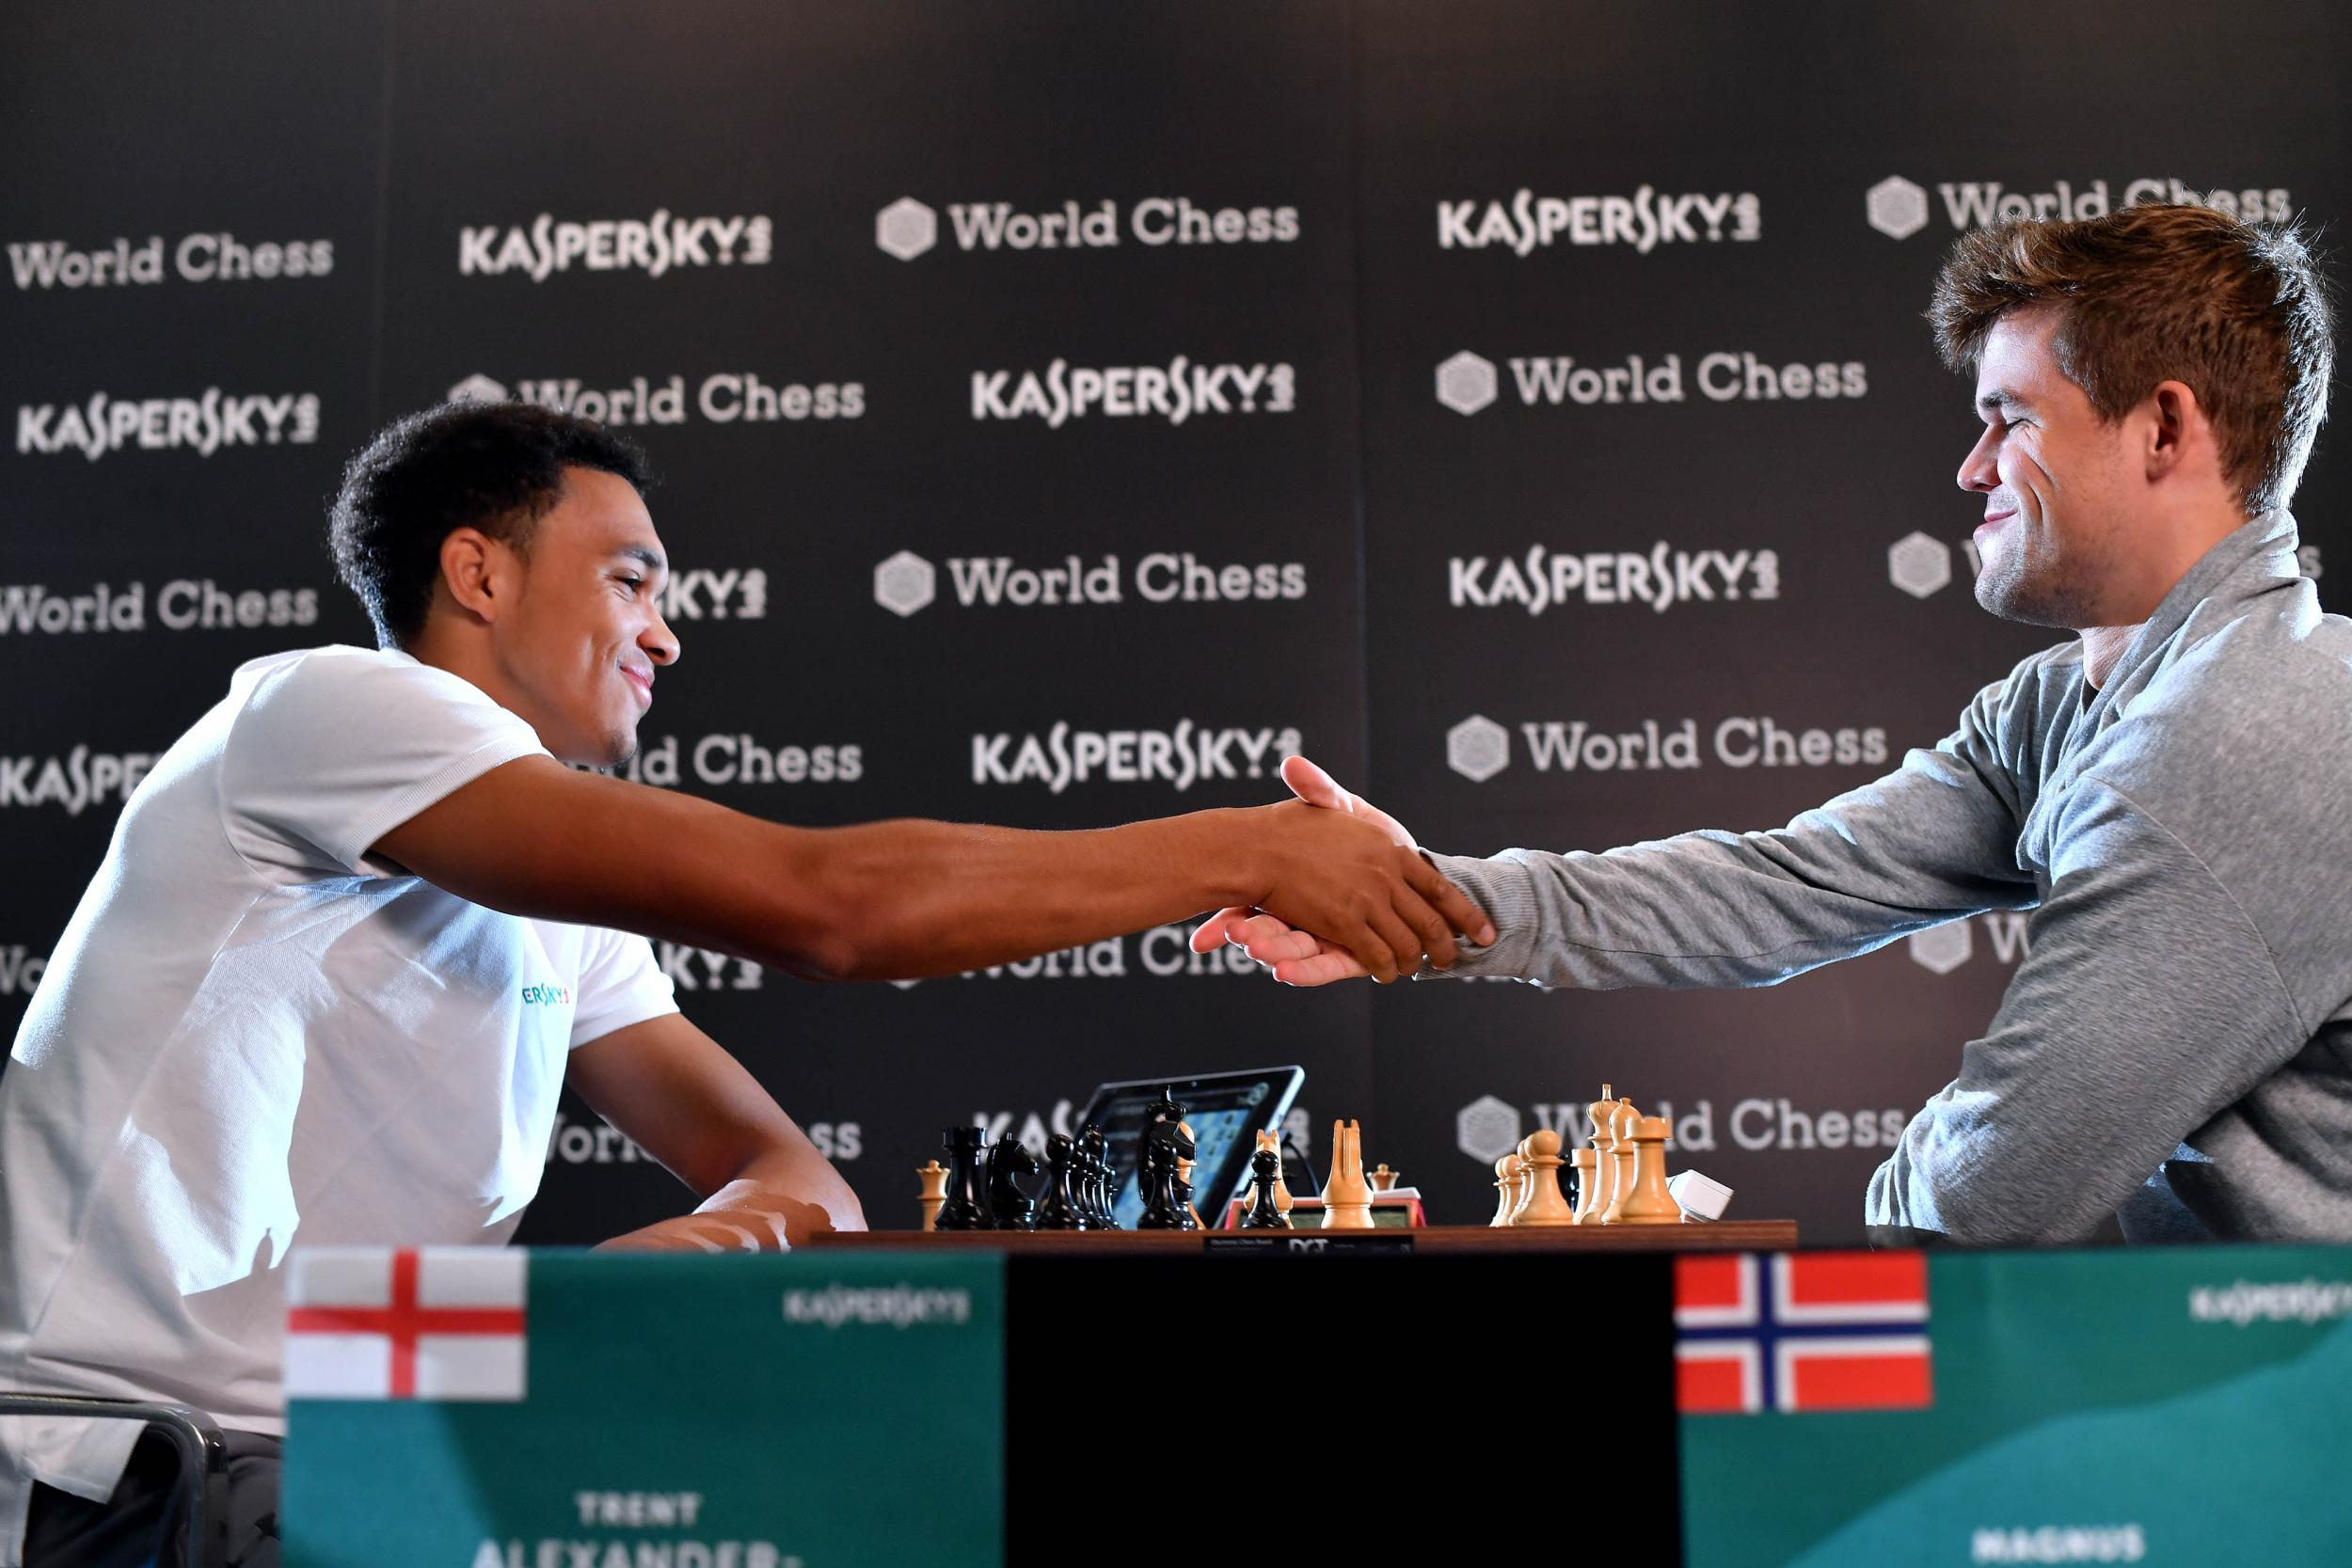 Trent Alexander-Arnold is outsmarted by the world chess